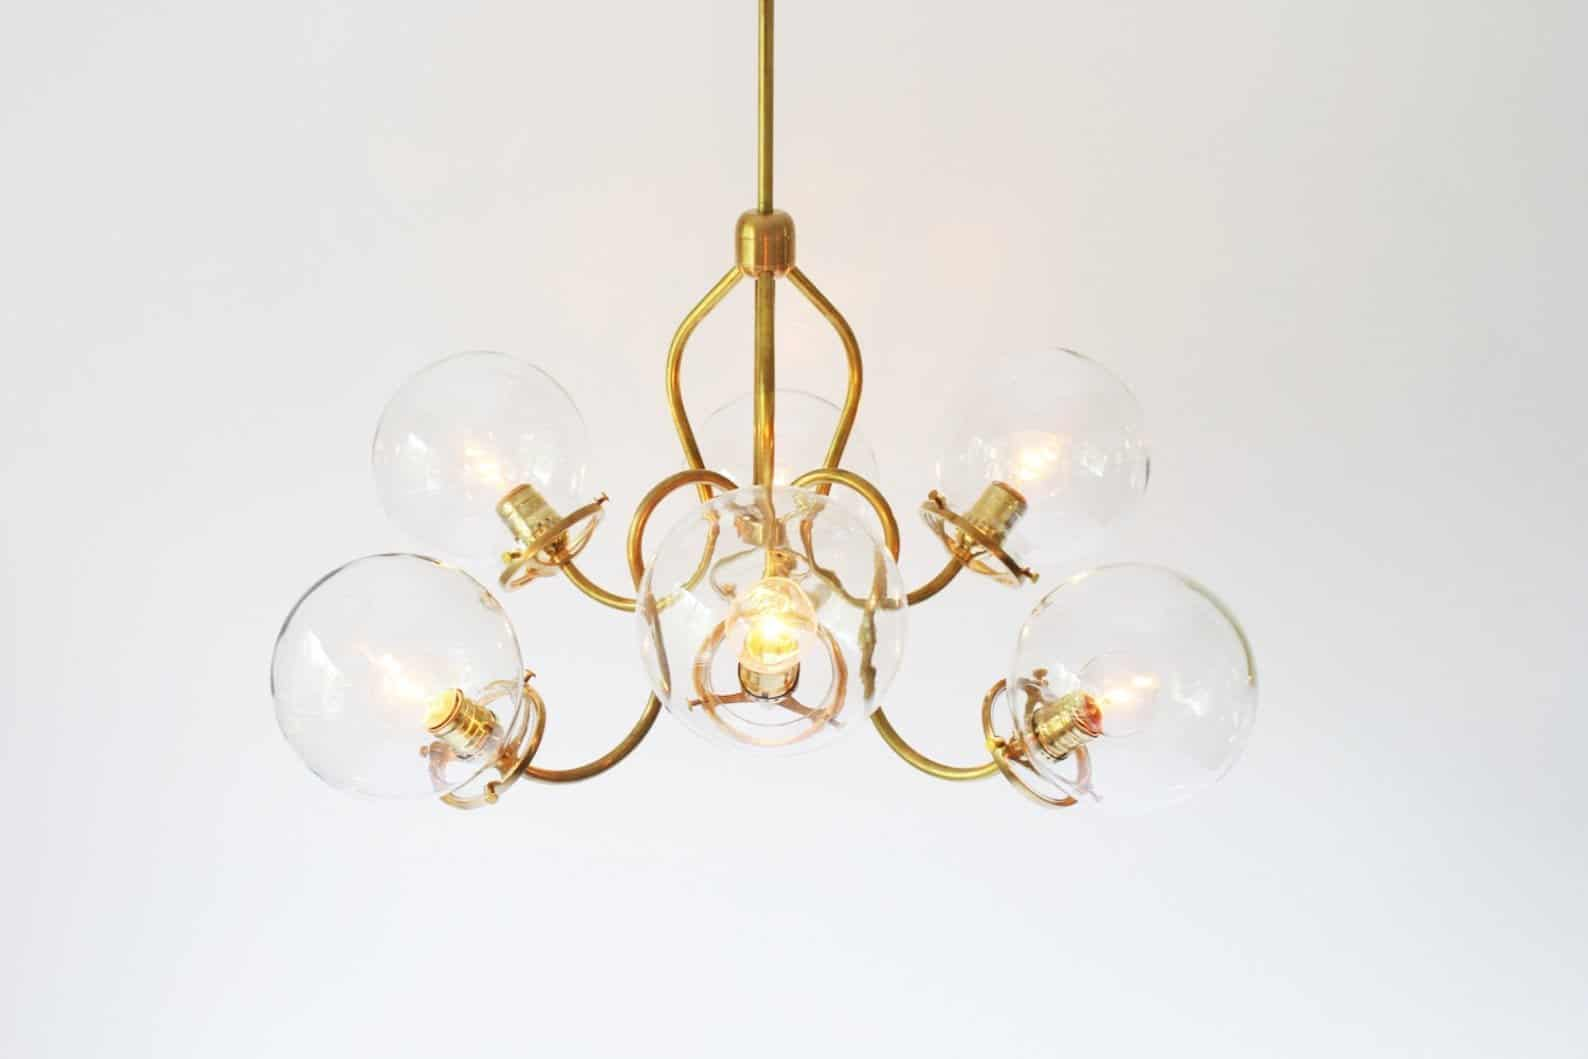 Unique Lighting From Etsy